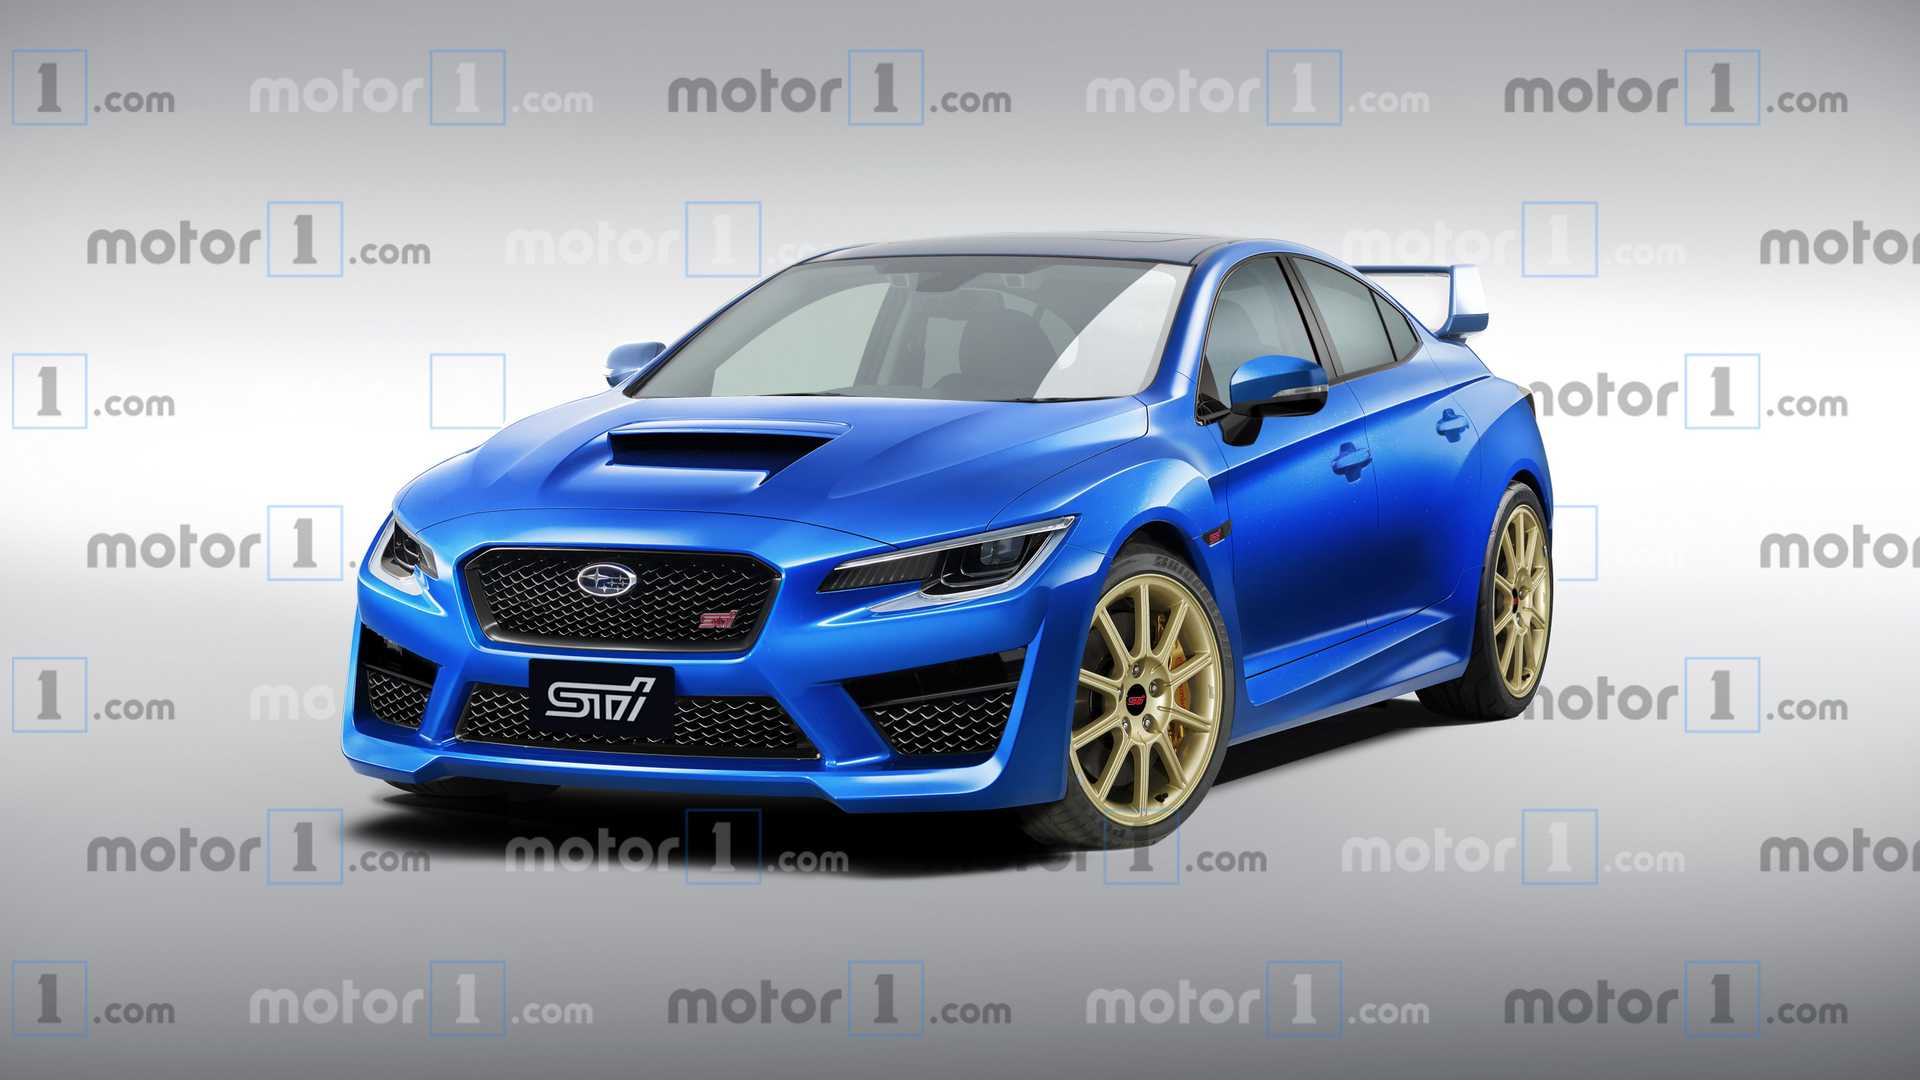 53 New Subaru Rumors 2020 Configurations with Subaru Rumors 2020